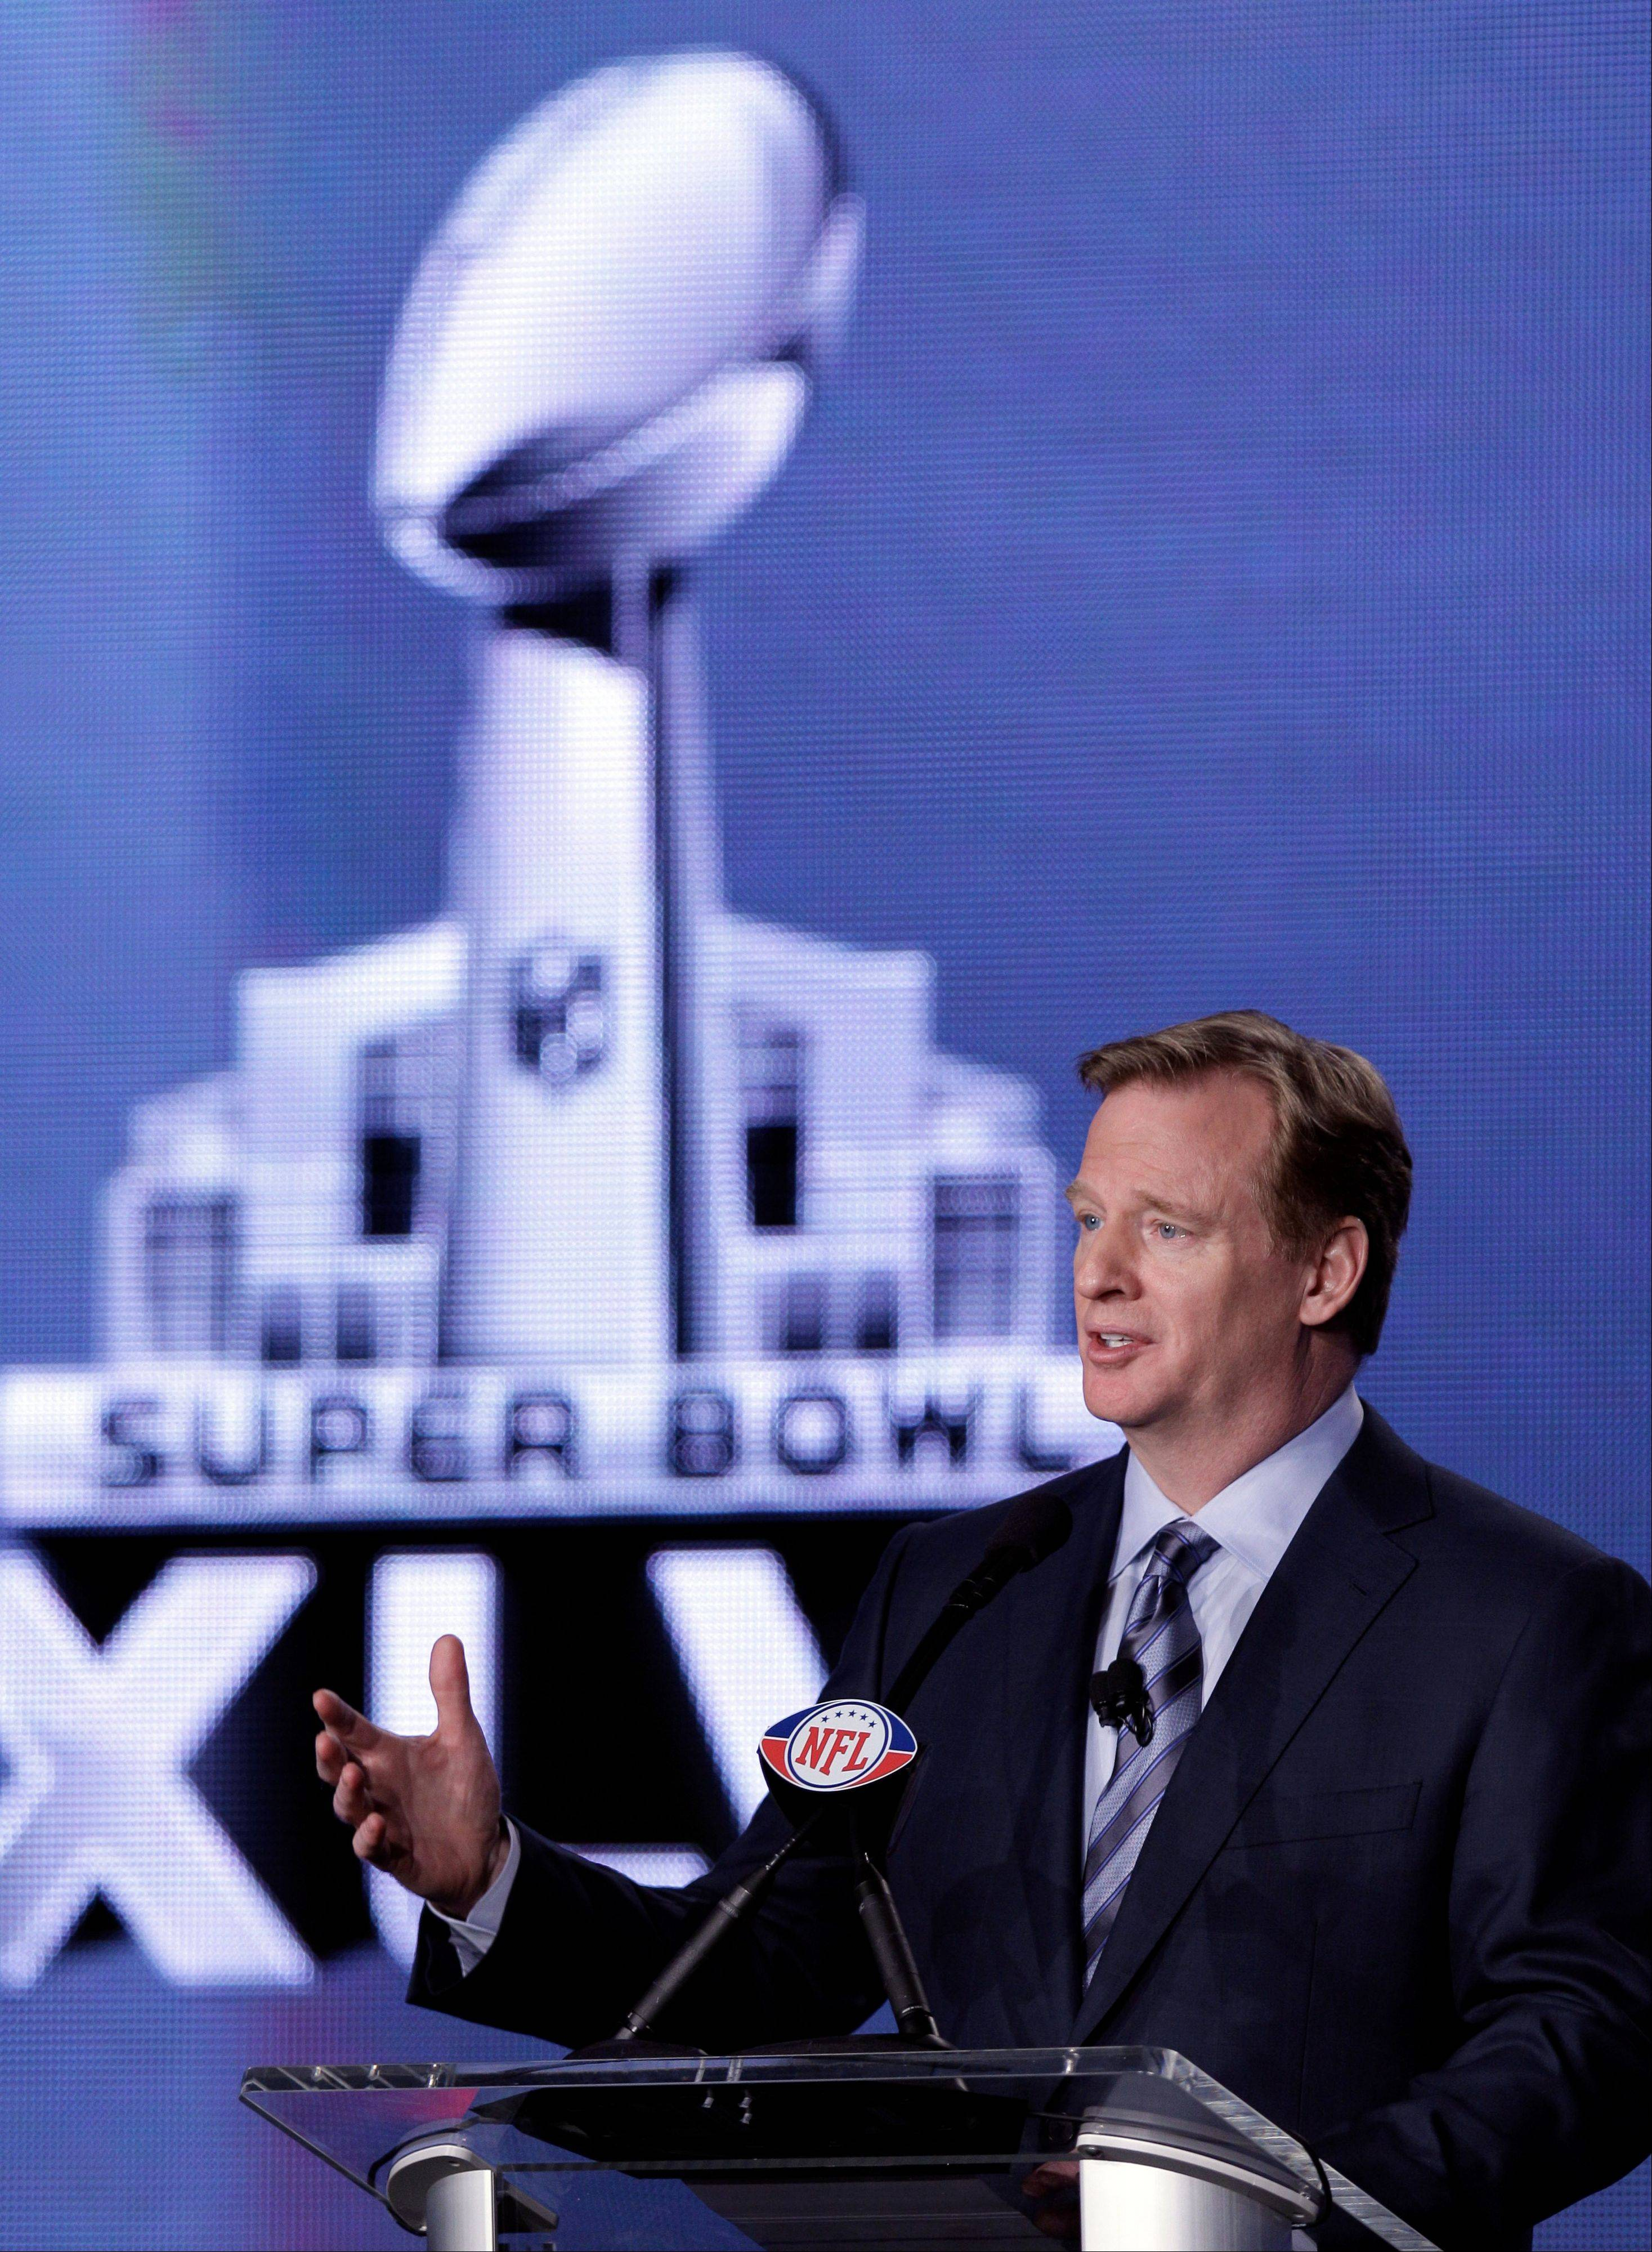 NFL Commissioner Roger Goodell answers a question during a news conference Friday, Feb. 3, 2012, in Indianapolis. The New England Patriots will face the New York Giants in Super Bowl XLVI on Feb. 5.